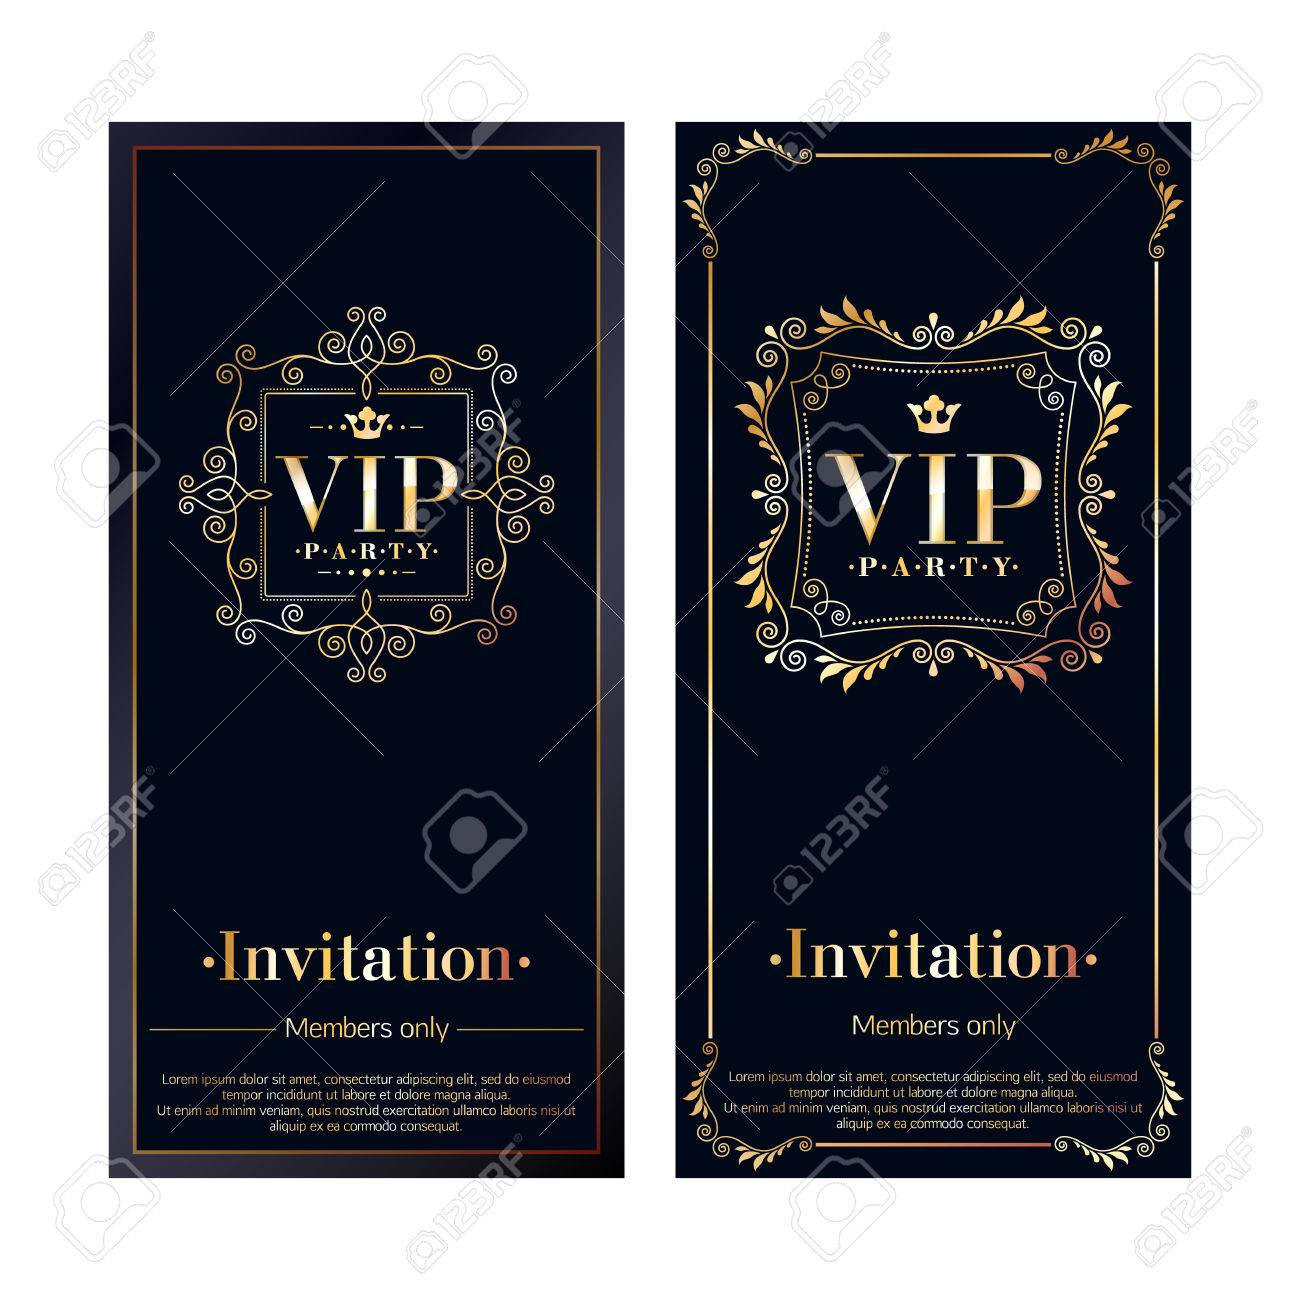 invitation letter for visapplication business sample%0A Vip zone members premium invitation cards black and golden design vip zone  members premium invitation cards